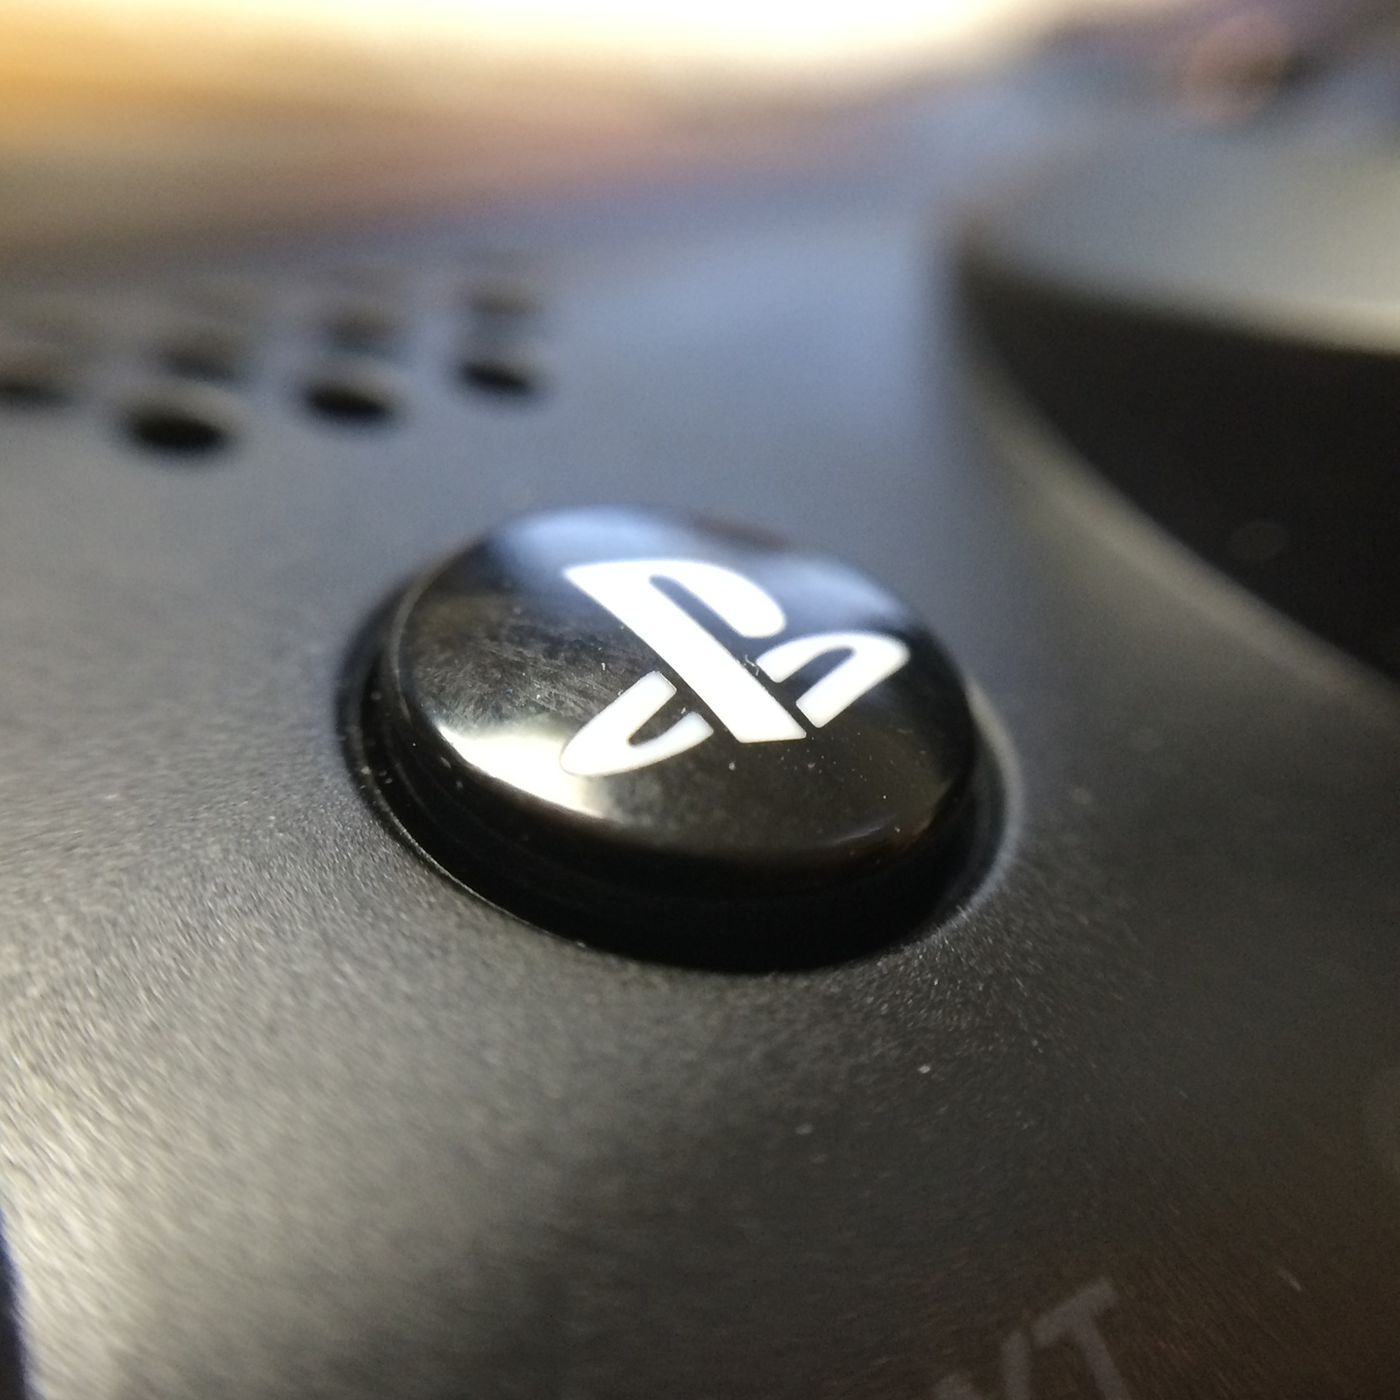 Sony takes a victory lap with ps4 and indies doesnt invite vita